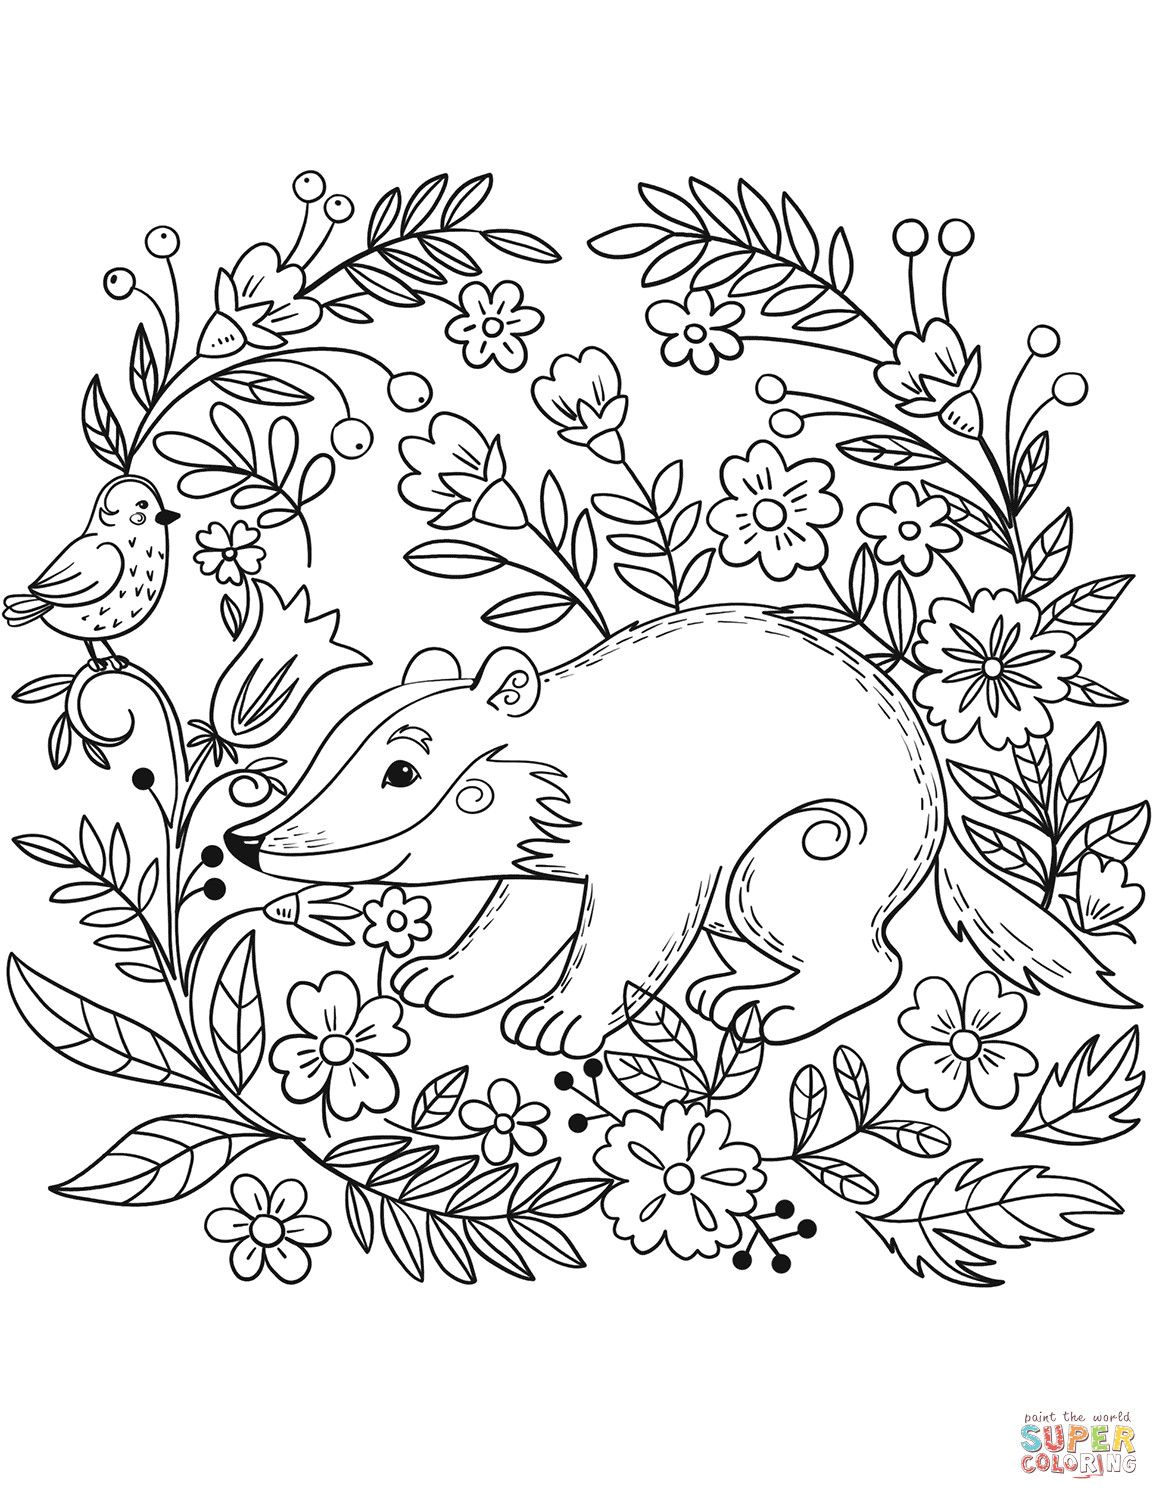 Badger Coloring Page With Forest Animals Coloring Pages With